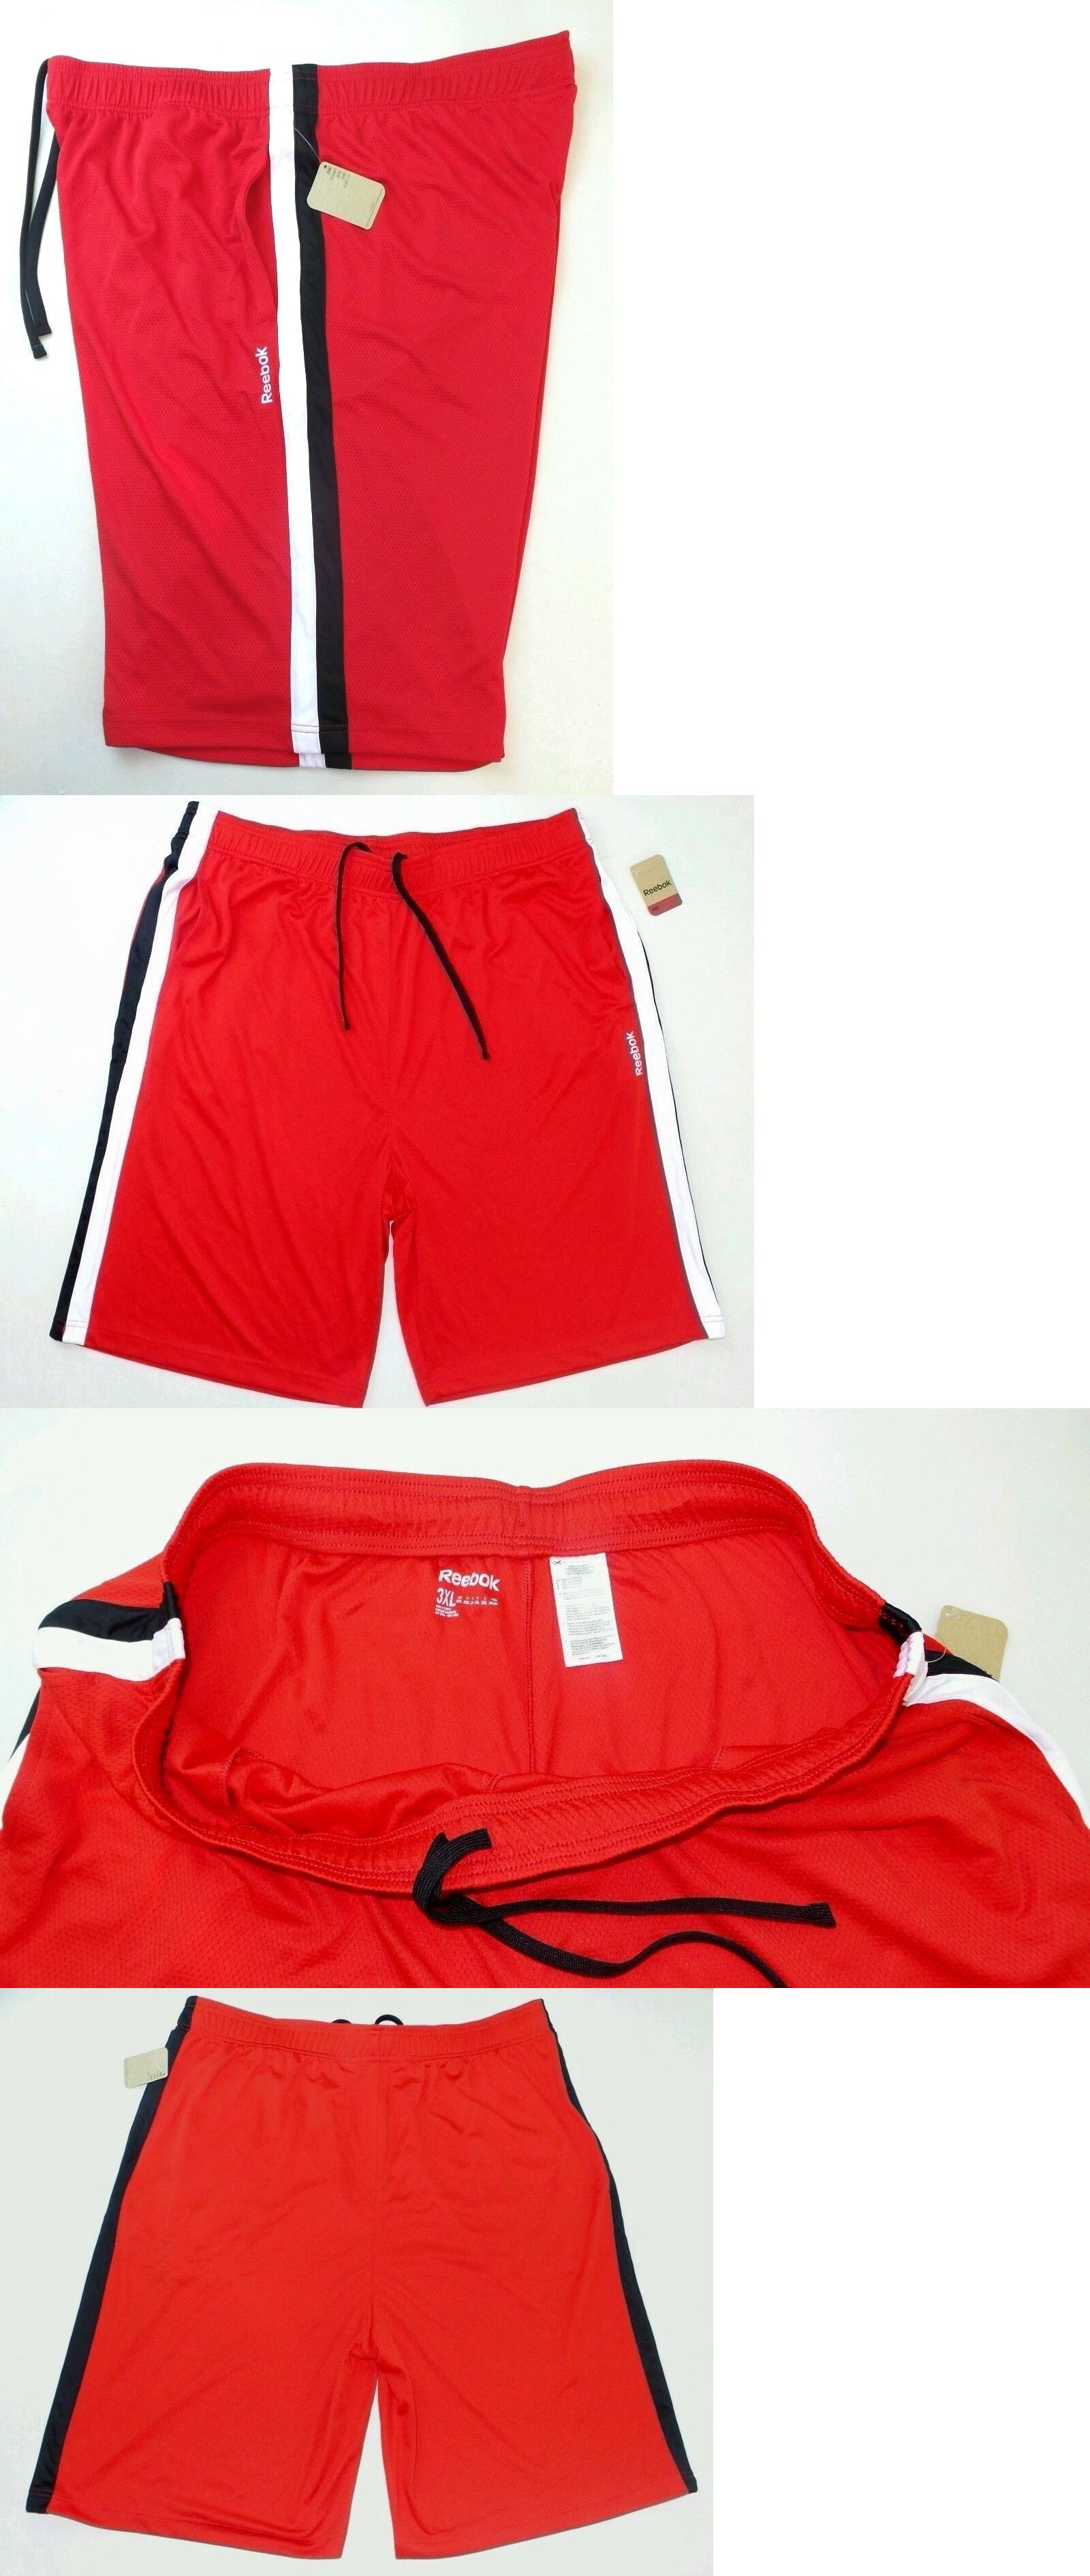 39f67587ebbd Basketball 21194  Reebok Big And Tall Men S Mesh Basketball Shorts 3Xl Red  W Color